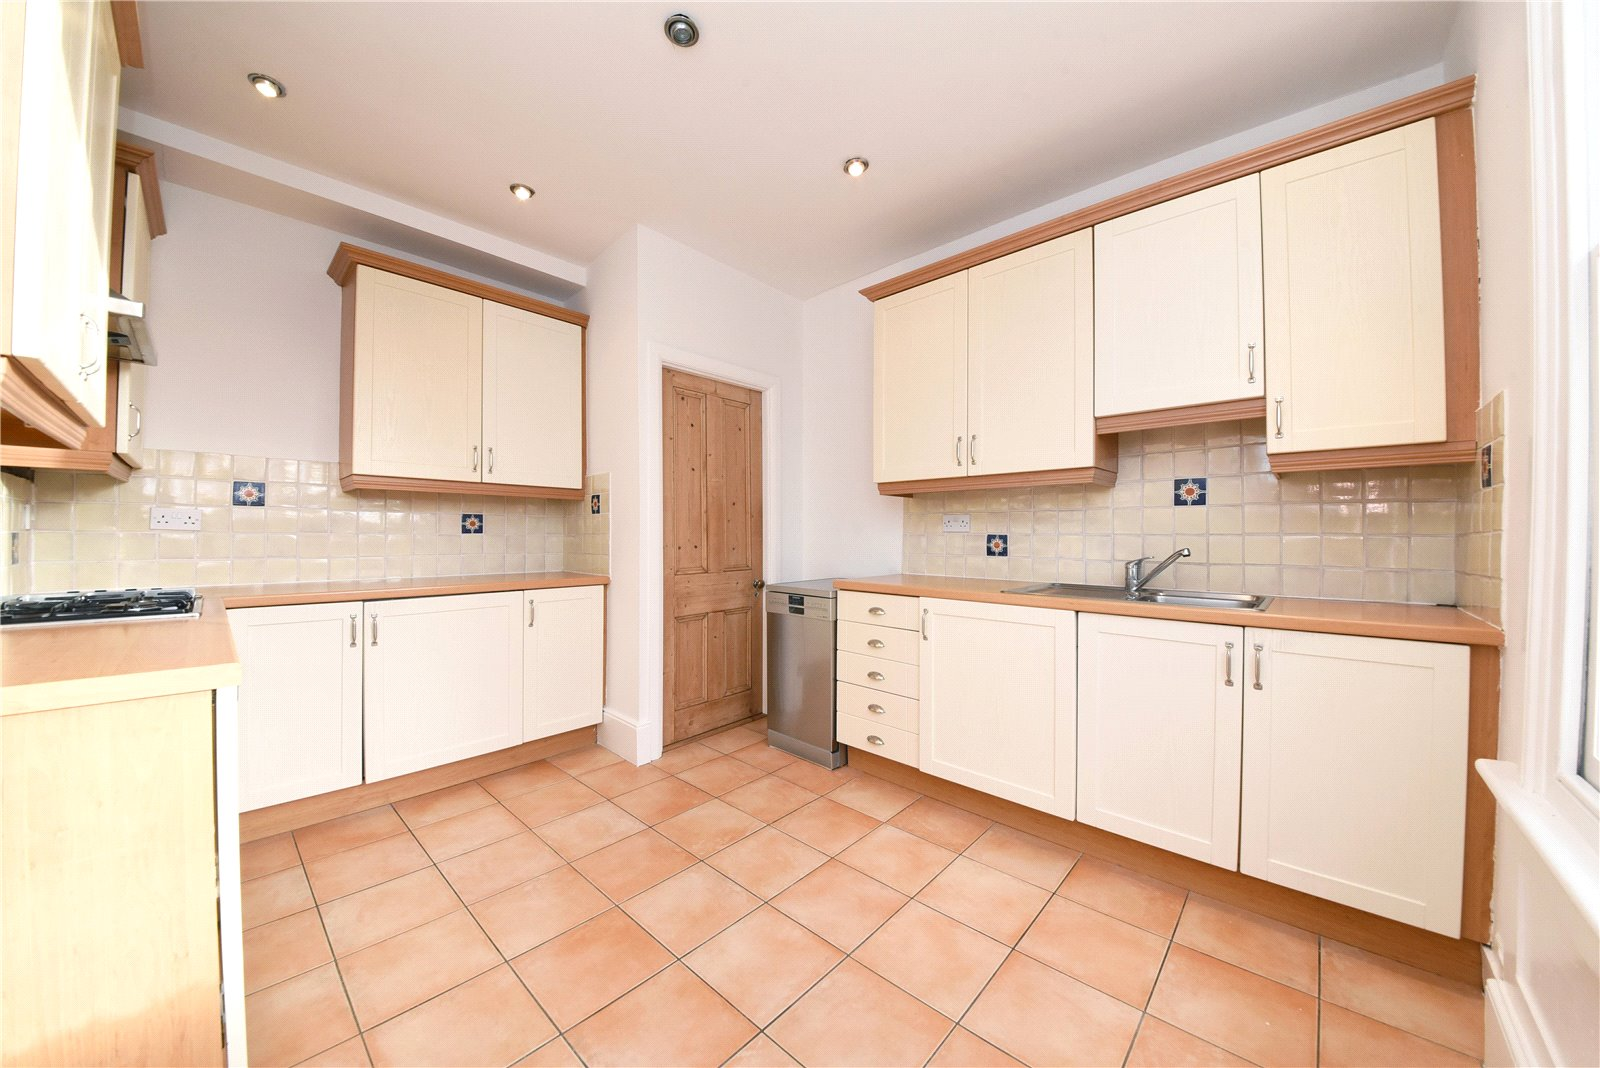 3 bed apartment to rent in Wood Street, High Barnet 6